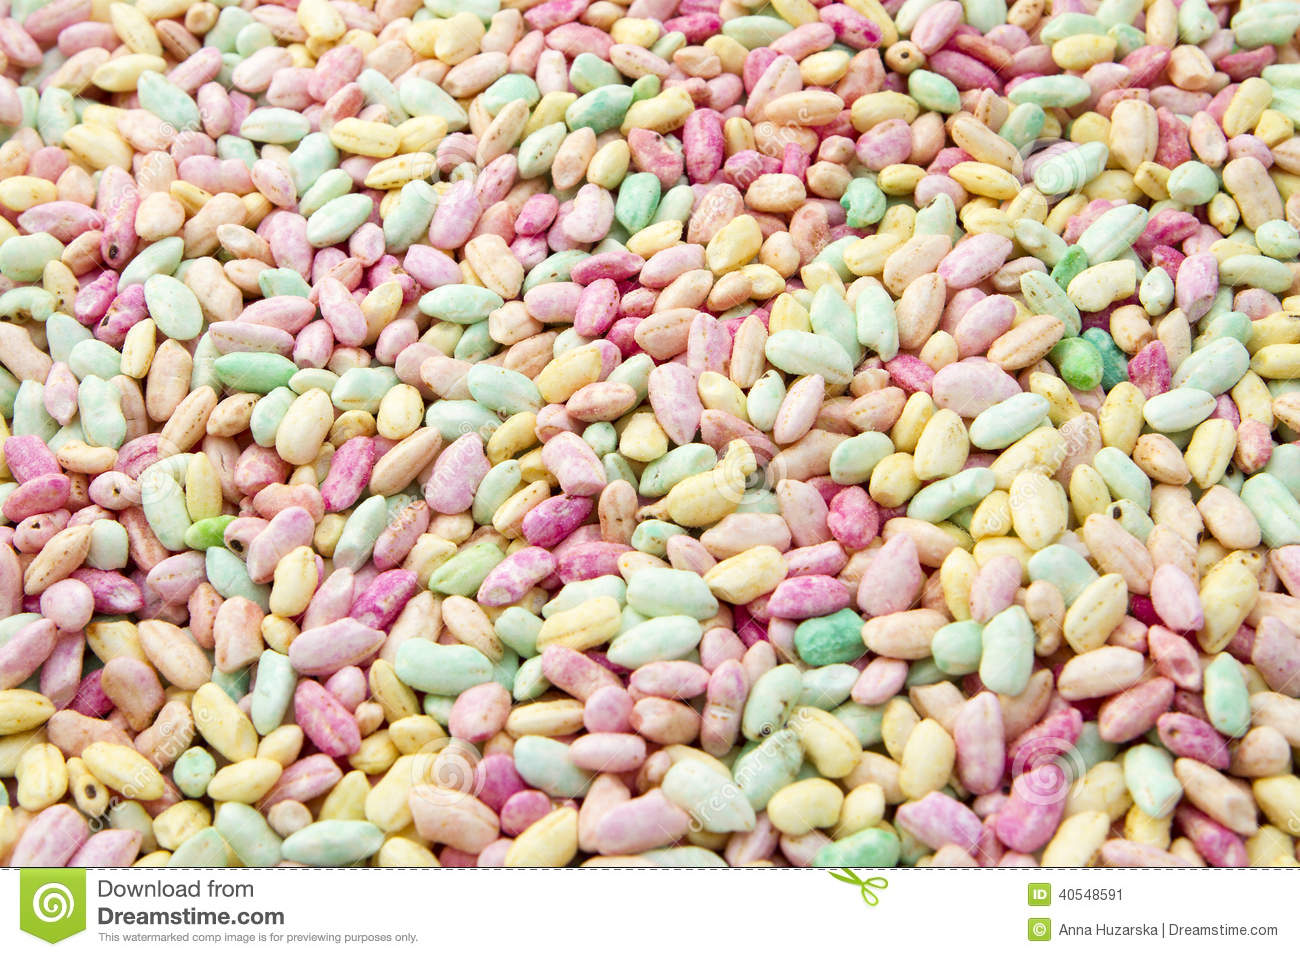 Colourful and sweet puffed rice